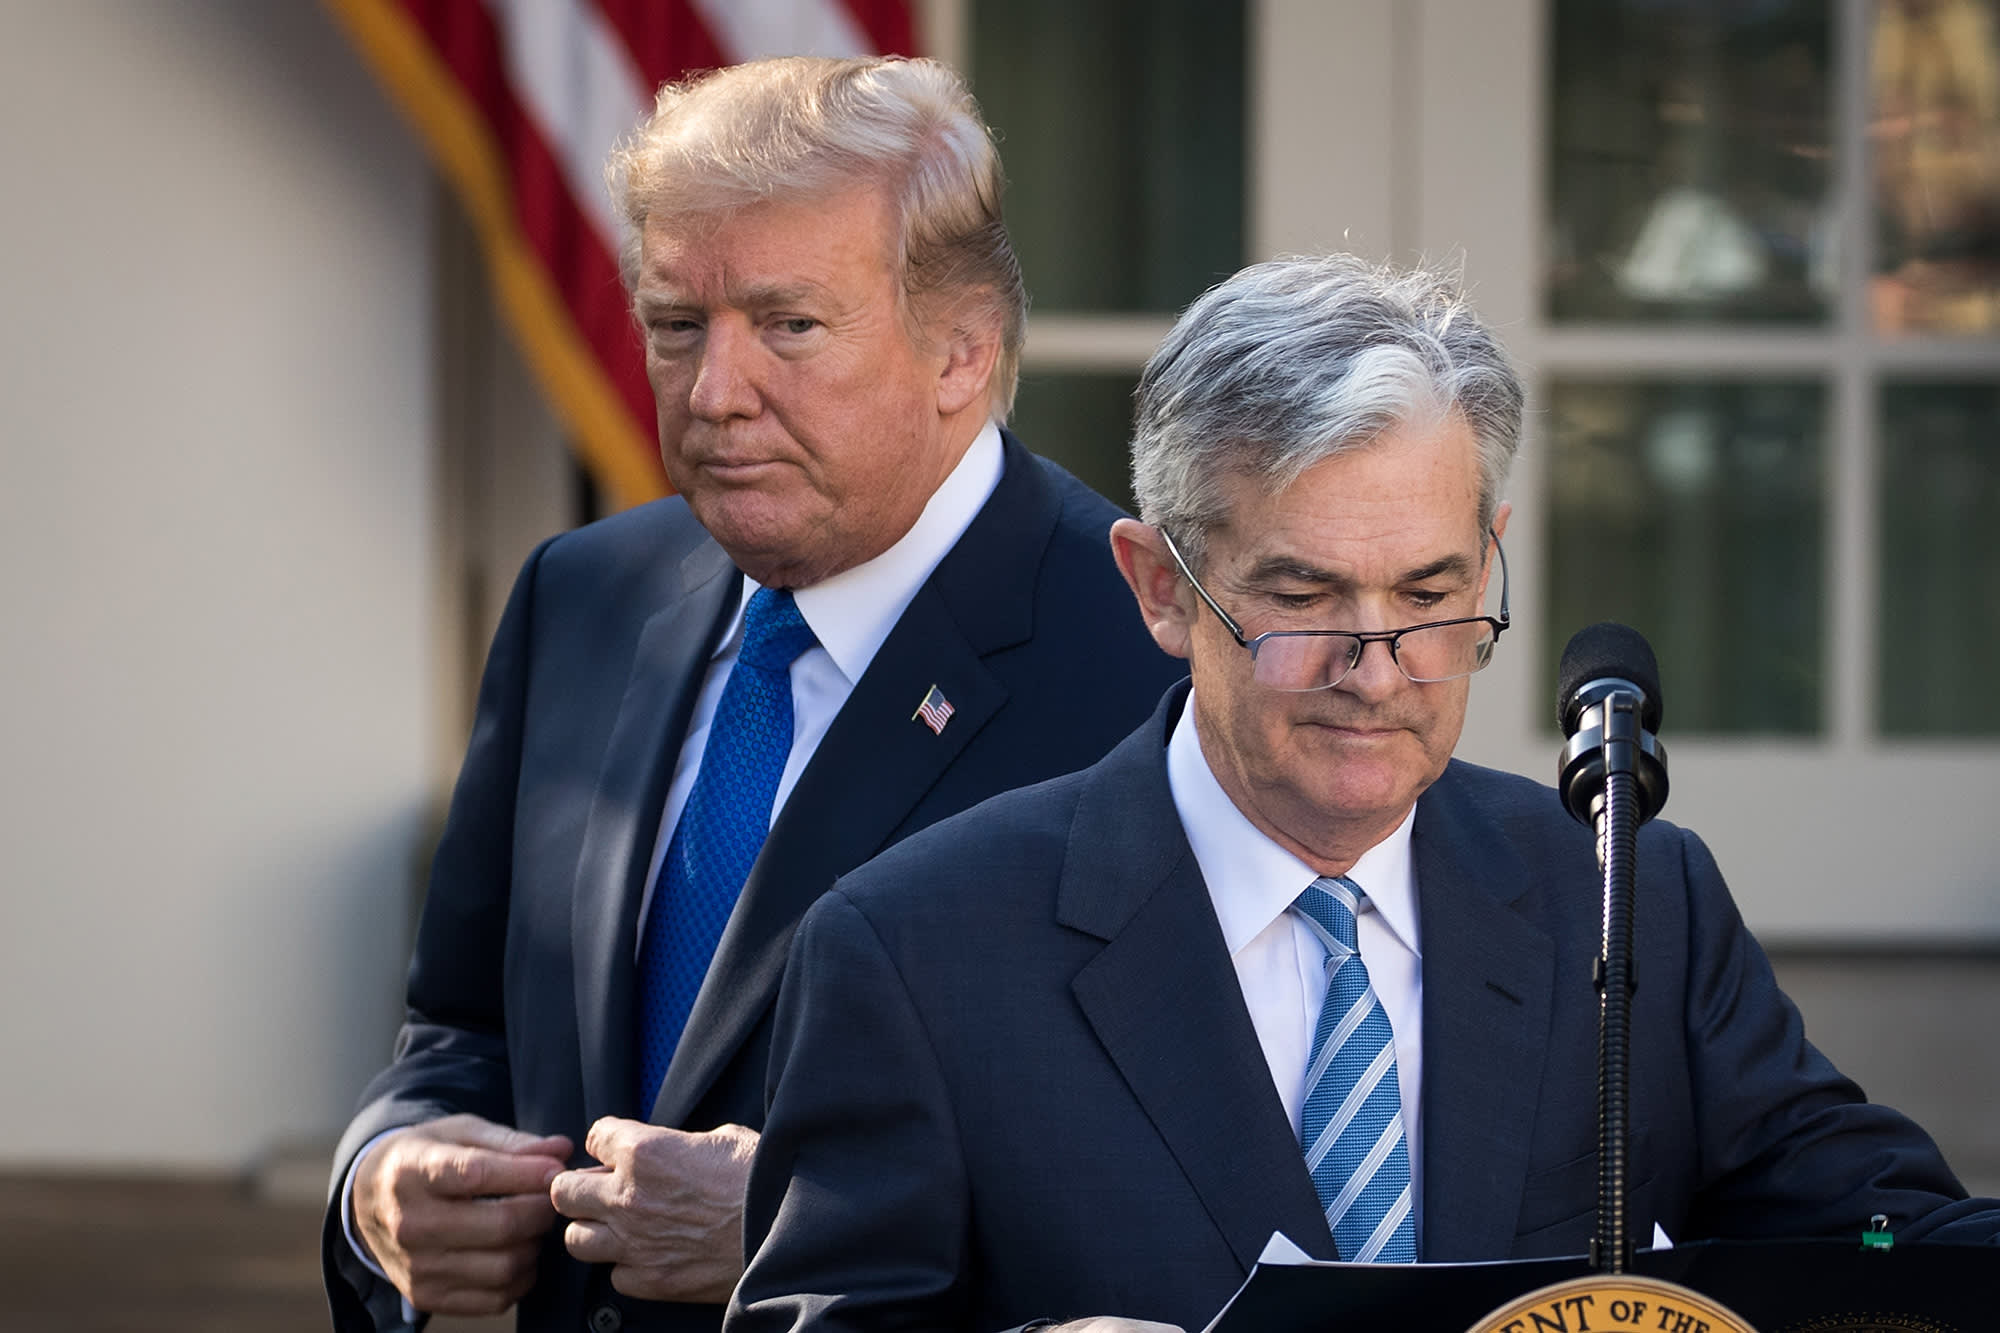 Trump again claims stock market would be 10,000 points higher if Fed didn't raise interest rates